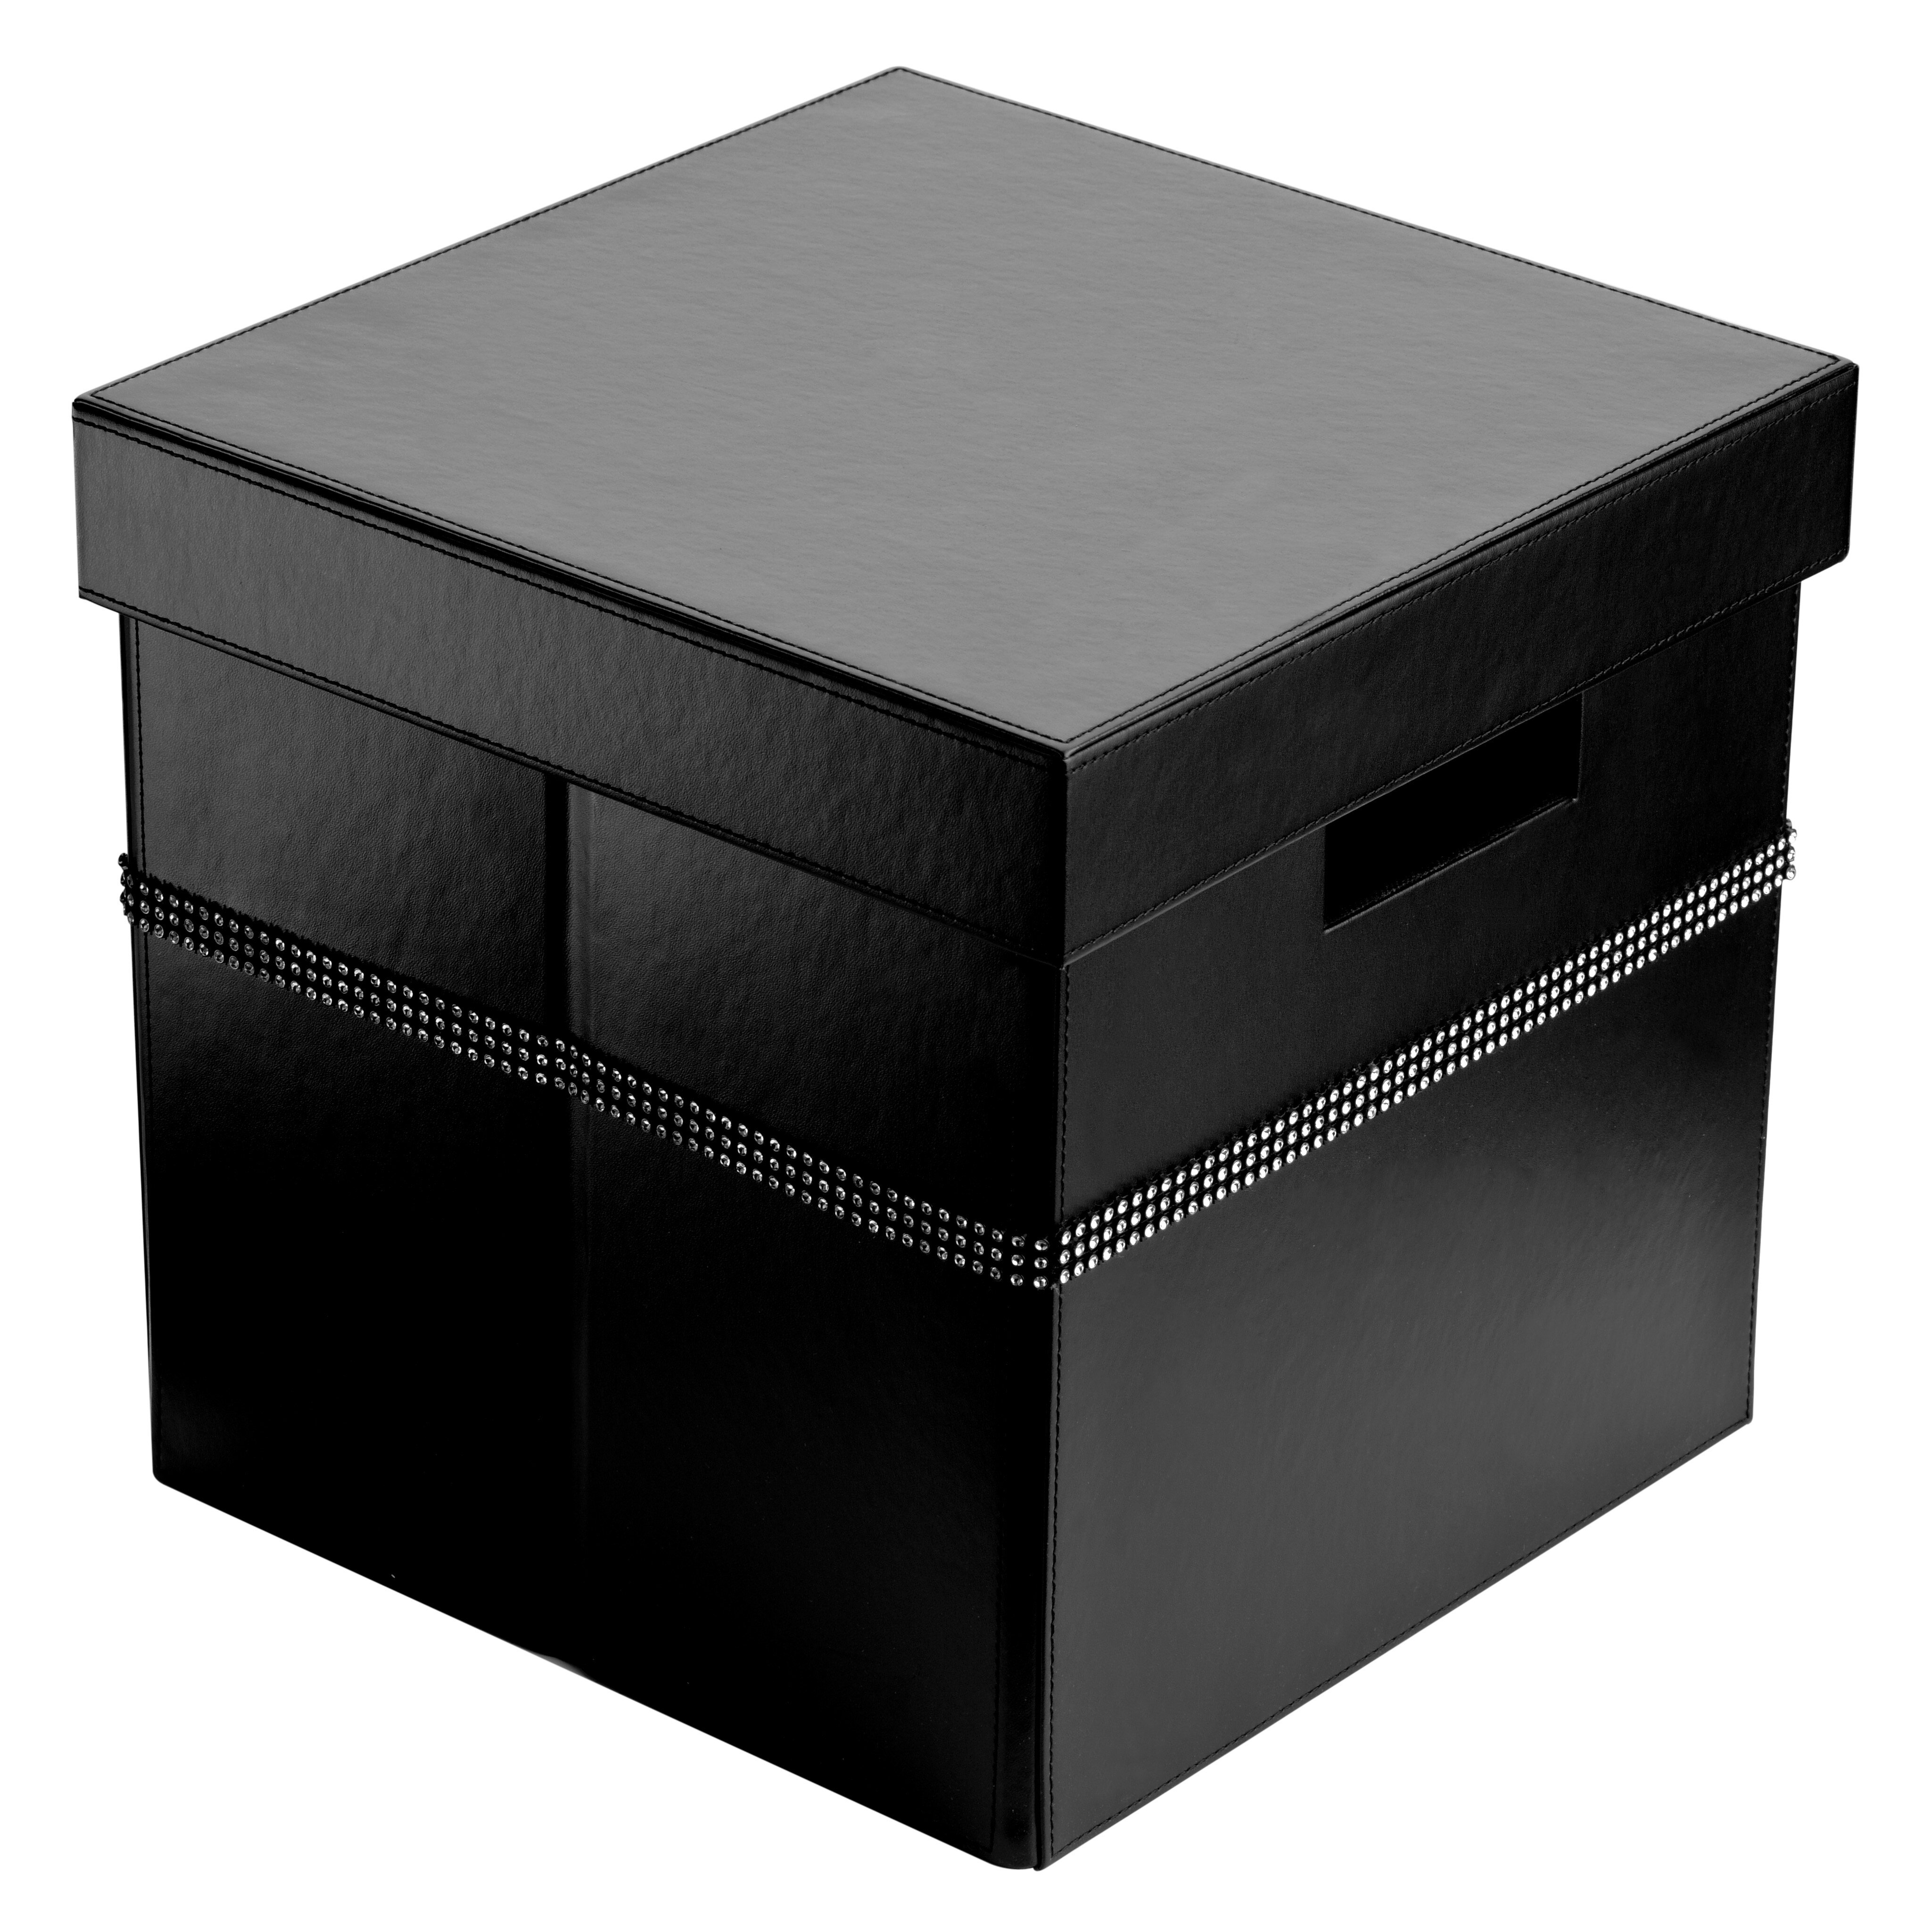 All Home Leather Storage Box With Lid | Wayfair.co.uk